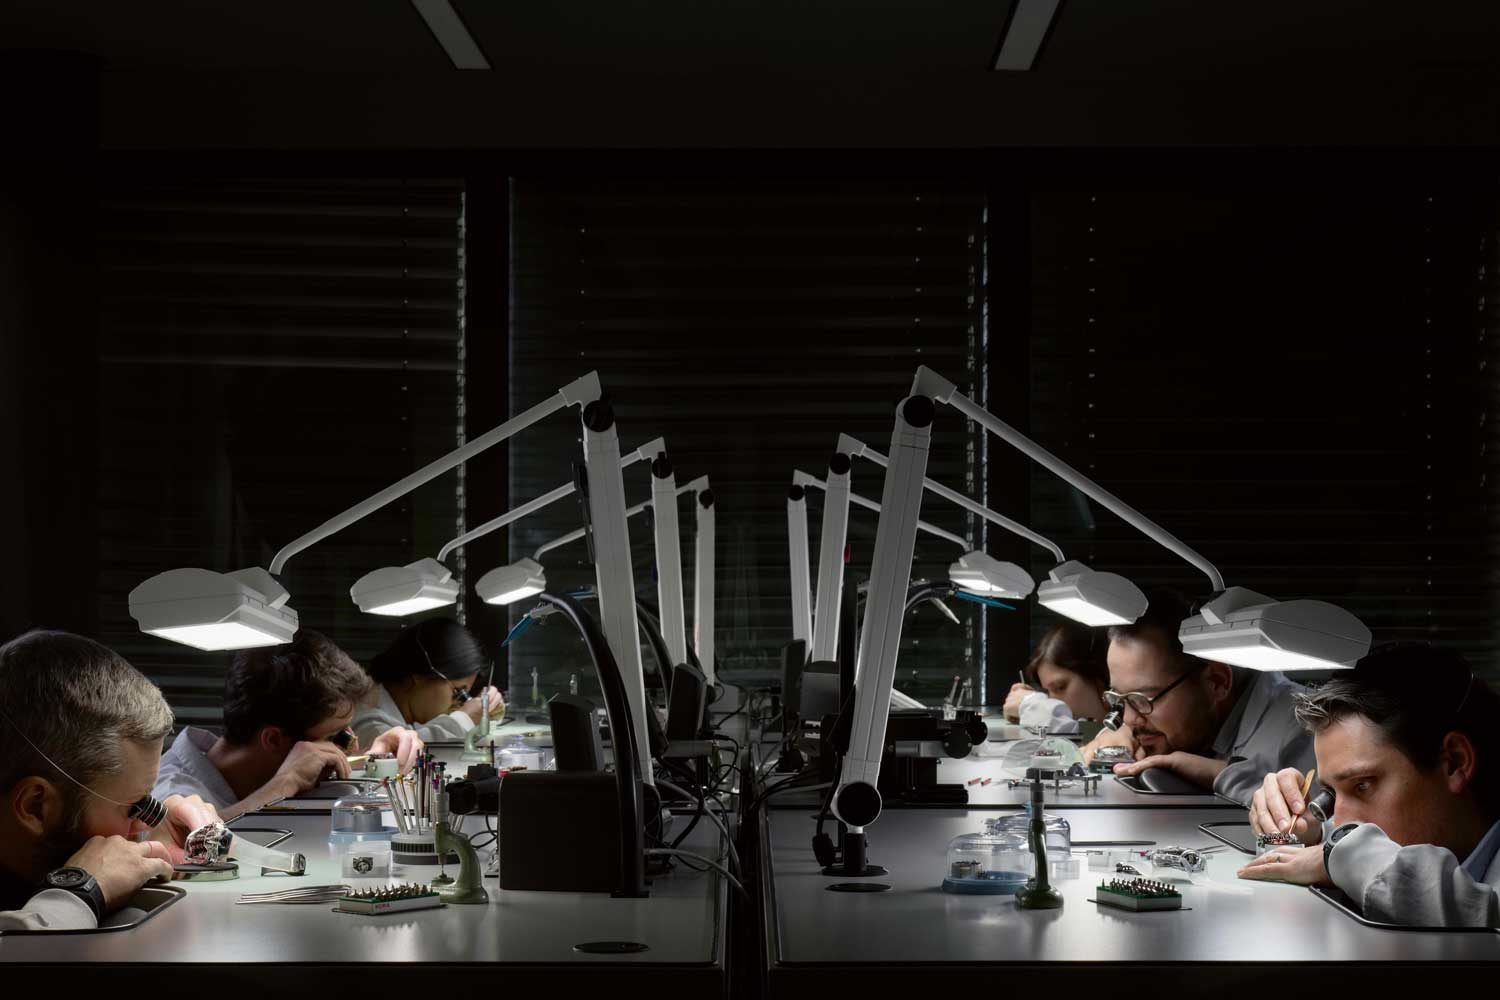 At the Hublot manufacture's complications workshop, experienced watchmakers assemble Hublot's highest watch complications.